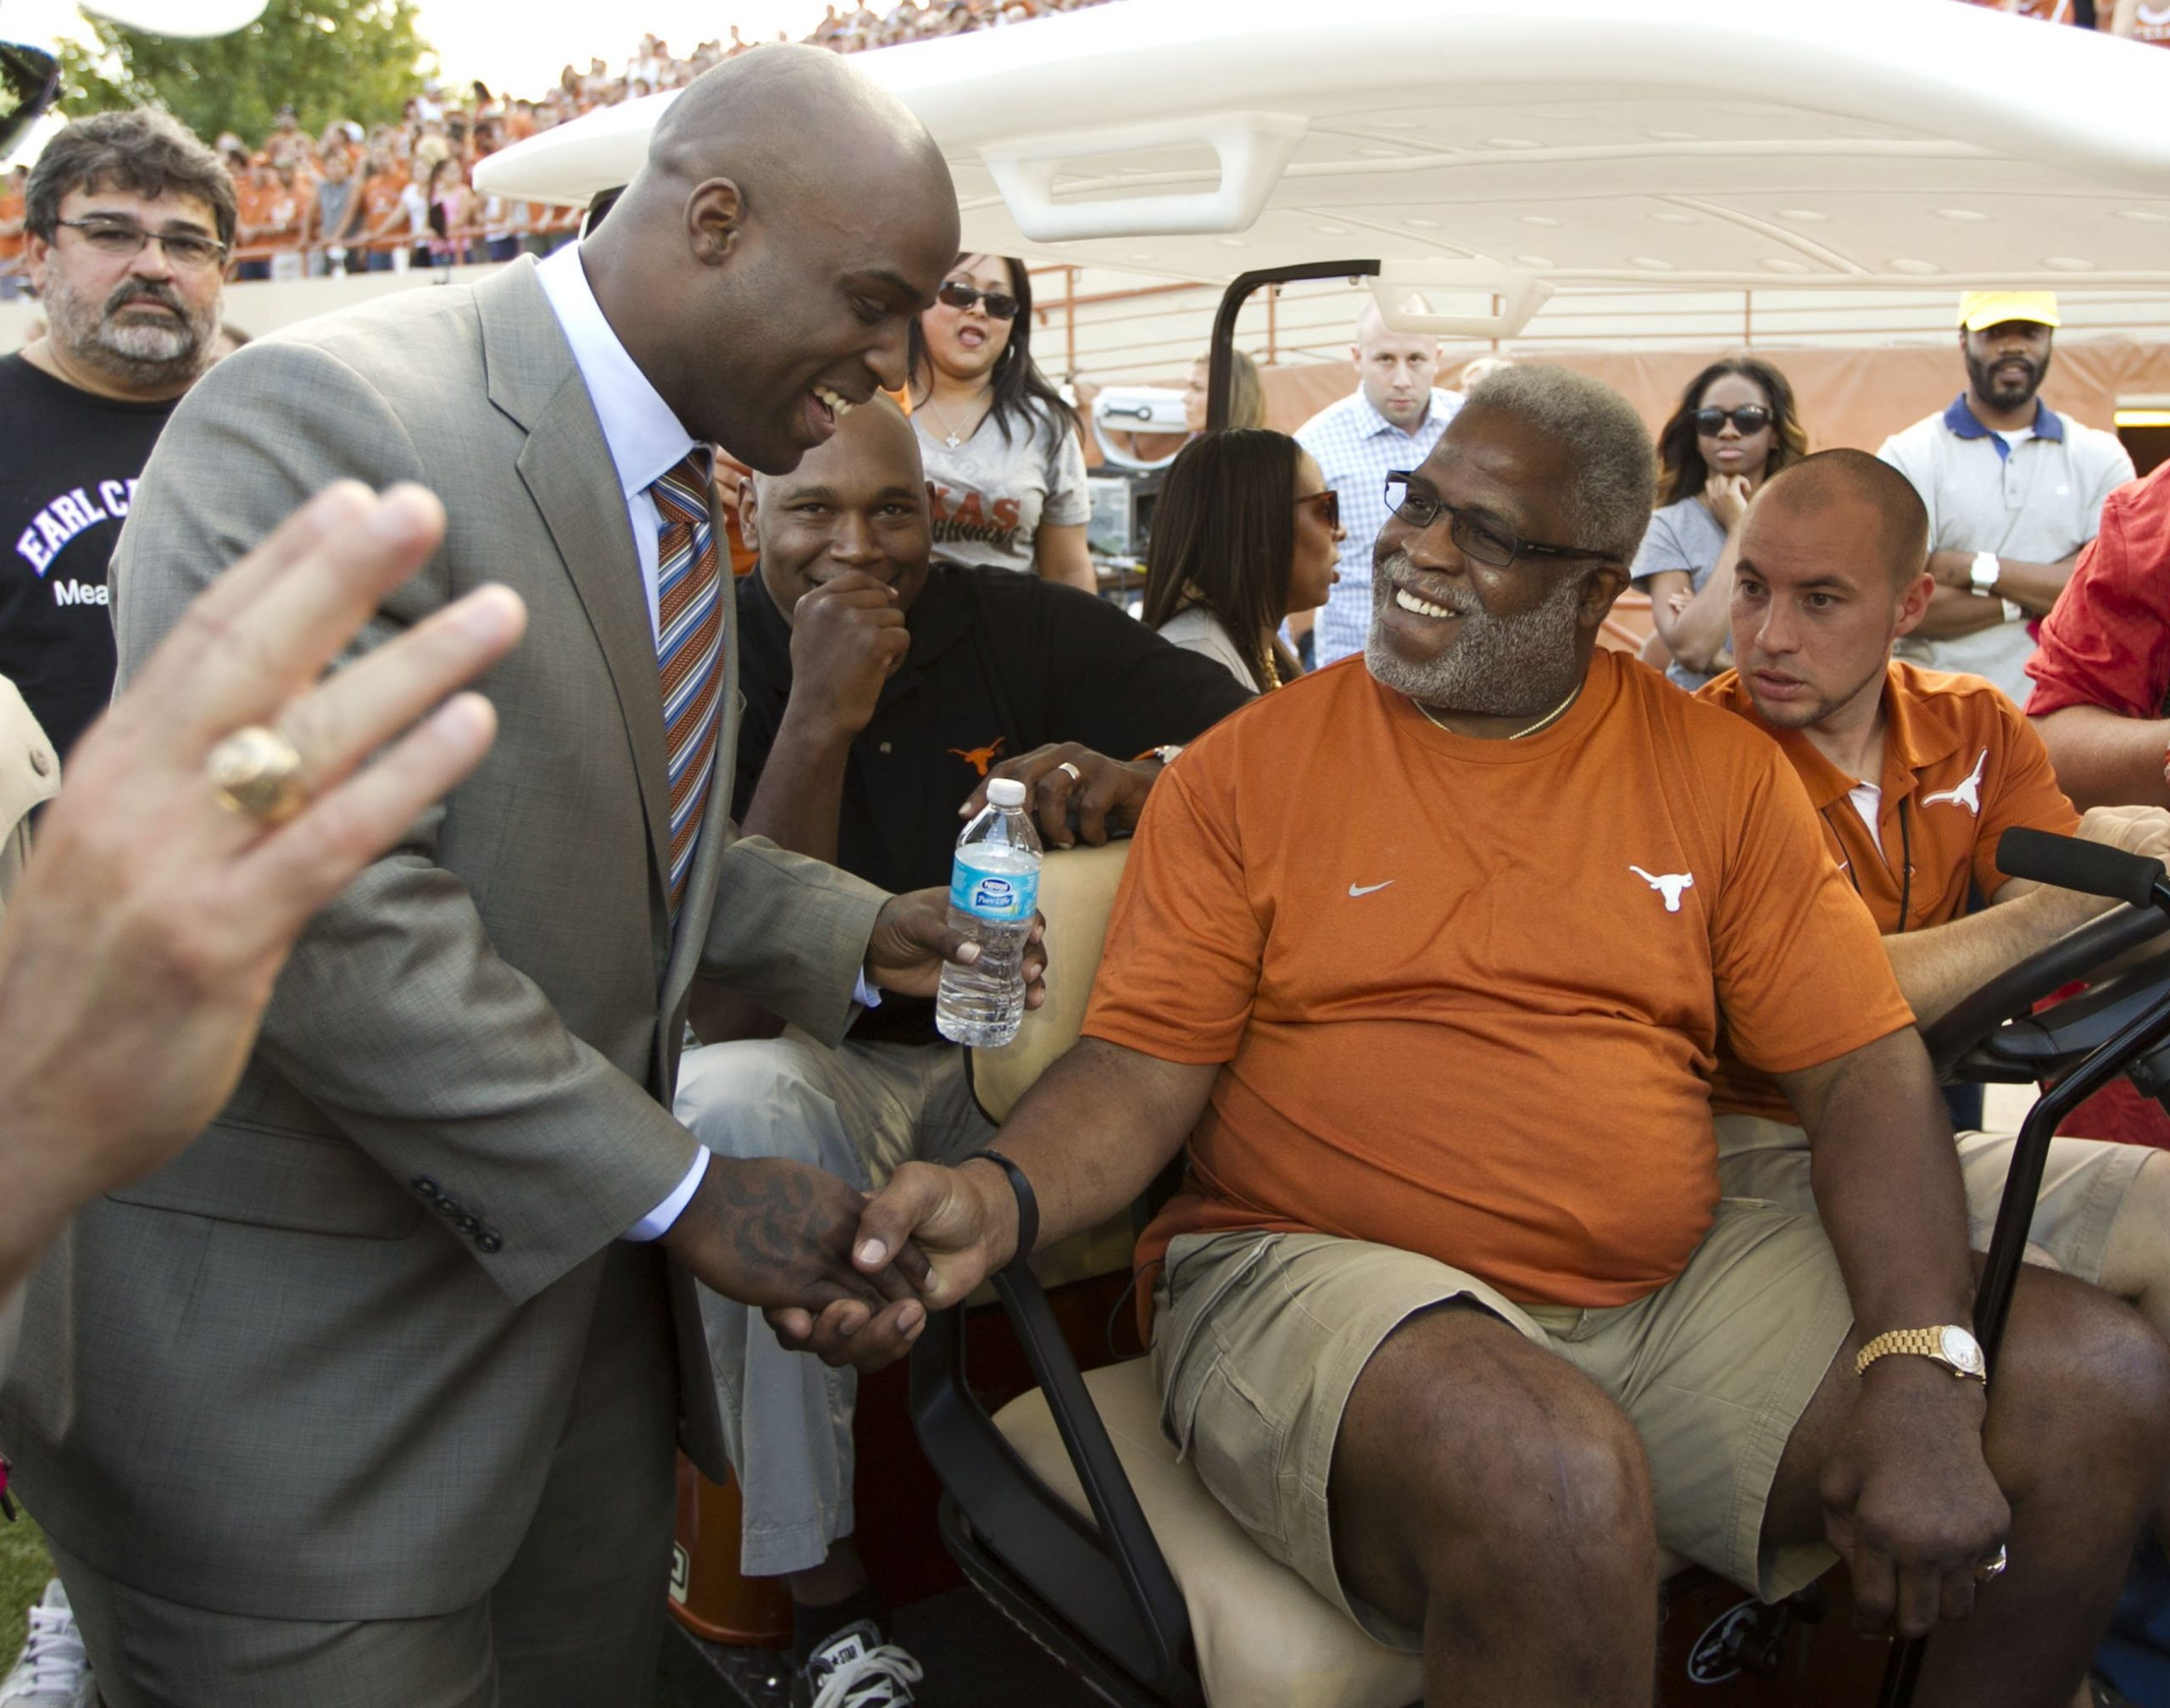 UT making sweeping changes in response to athlete requests but keeps 'The Eyes of Texas'